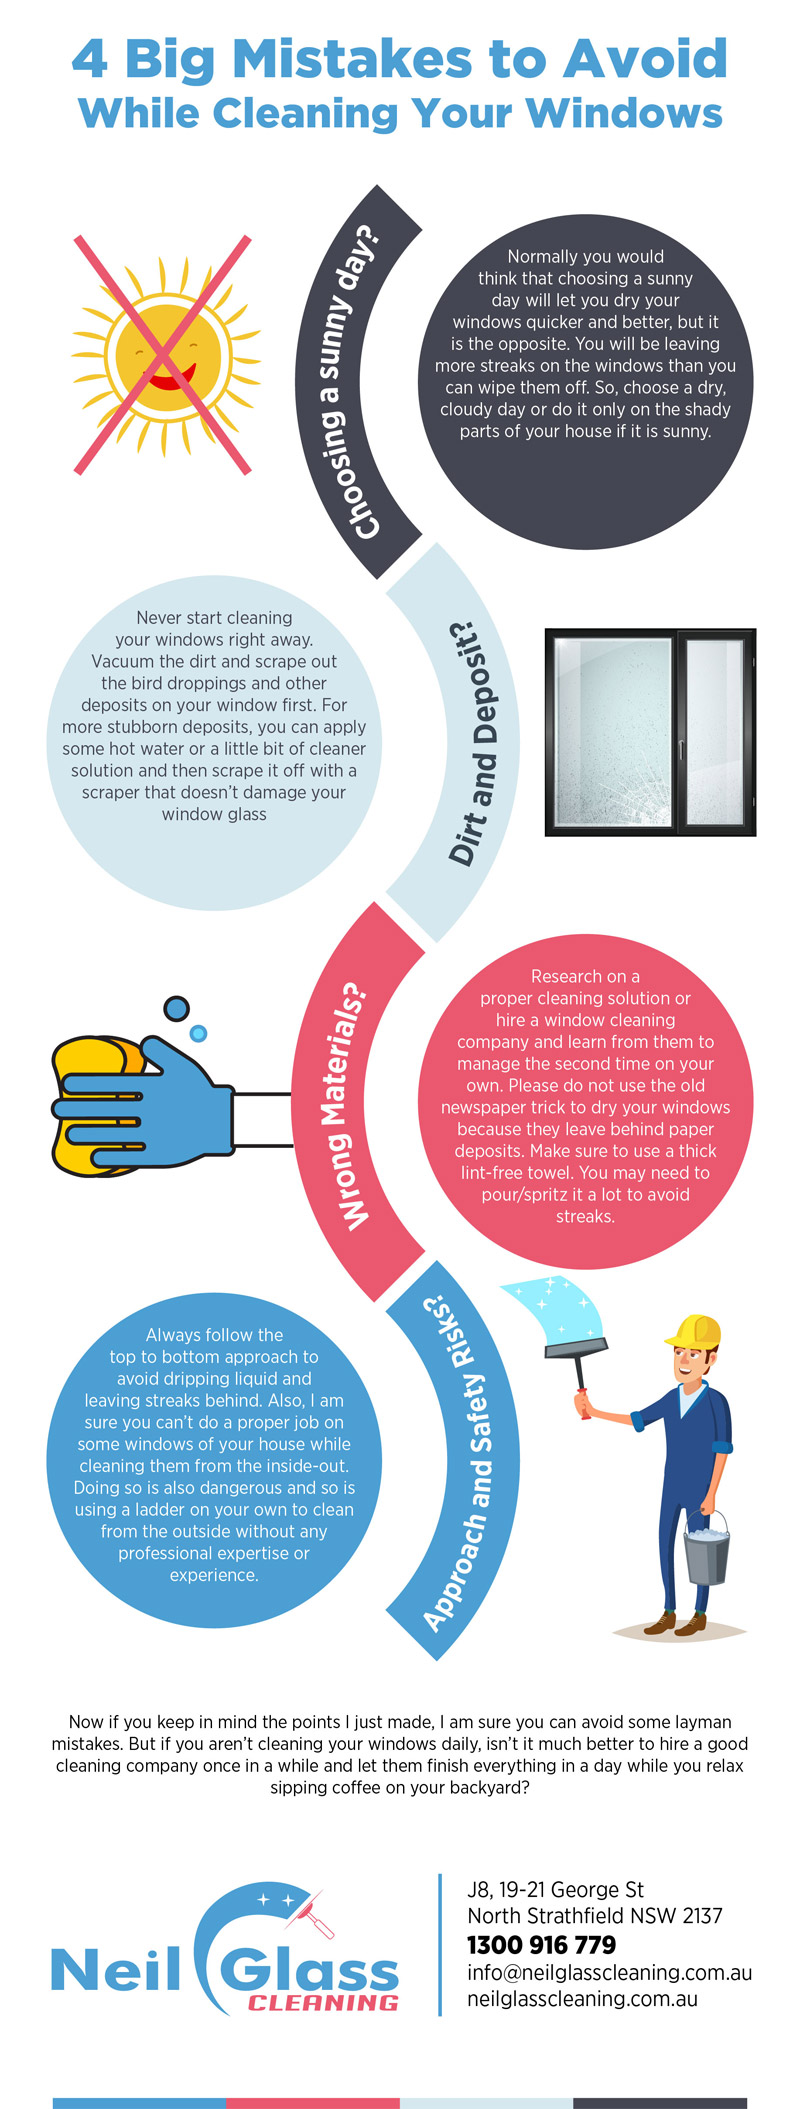 #Home & Garden #Cleaning #Windows Cleaning